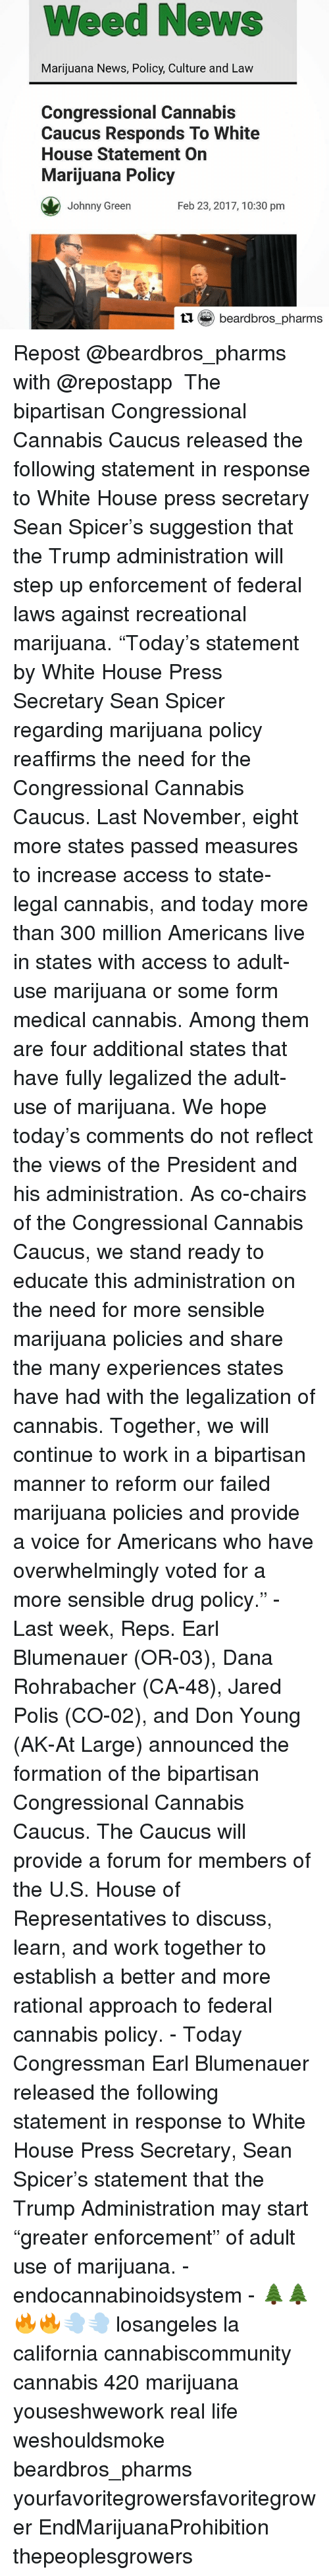 """Johnnies: Weed News  Marijuana News, Policy, Culture and Law  Congressional Cannabis  Caucus Responds To White  House Statement On  Marijuana Policy  Feb 23, 2017, 10:30 pm  Johnny Green  beardbros pharms Repost @beardbros_pharms with @repostapp ・・・ The bipartisan Congressional Cannabis Caucus released the following statement in response to White House press secretary Sean Spicer's suggestion that the Trump administration will step up enforcement of federal laws against recreational marijuana. """"Today's statement by White House Press Secretary Sean Spicer regarding marijuana policy reaffirms the need for the Congressional Cannabis Caucus. Last November, eight more states passed measures to increase access to state-legal cannabis, and today more than 300 million Americans live in states with access to adult-use marijuana or some form medical cannabis. Among them are four additional states that have fully legalized the adult-use of marijuana. We hope today's comments do not reflect the views of the President and his administration. As co-chairs of the Congressional Cannabis Caucus, we stand ready to educate this administration on the need for more sensible marijuana policies and share the many experiences states have had with the legalization of cannabis. Together, we will continue to work in a bipartisan manner to reform our failed marijuana policies and provide a voice for Americans who have overwhelmingly voted for a more sensible drug policy."""" - Last week, Reps. Earl Blumenauer (OR-03), Dana Rohrabacher (CA-48), Jared Polis (CO-02), and Don Young (AK-At Large) announced the formation of the bipartisan Congressional Cannabis Caucus. The Caucus will provide a forum for members of the U.S. House of Representatives to discuss, learn, and work together to establish a better and more rational approach to federal cannabis policy. - Today Congressman Earl Blumenauer released the following statement in response to White House Press Secretary, Sean Spicer's statement that th"""